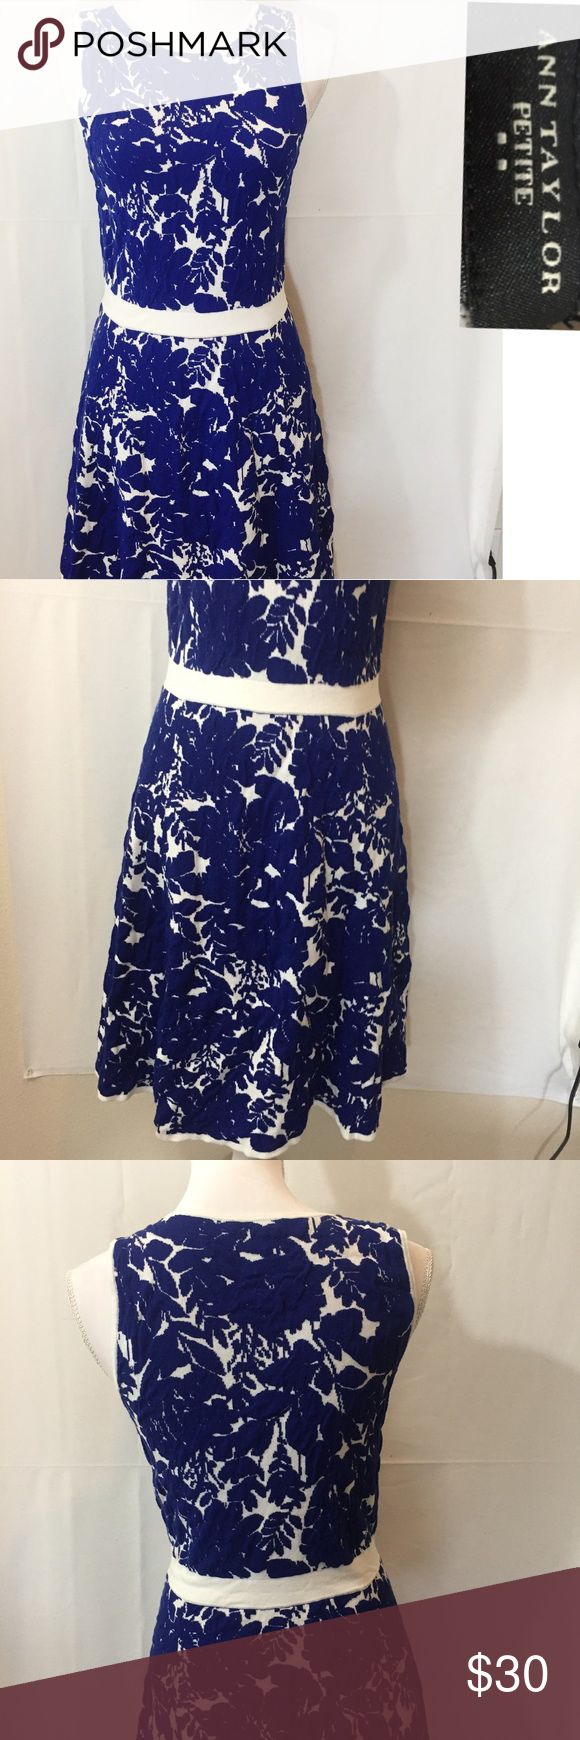 Ann Taylor petites dress🌊 Size medium blue and white floral pattern dress super cute great condition Ann Taylor Dresses Midi